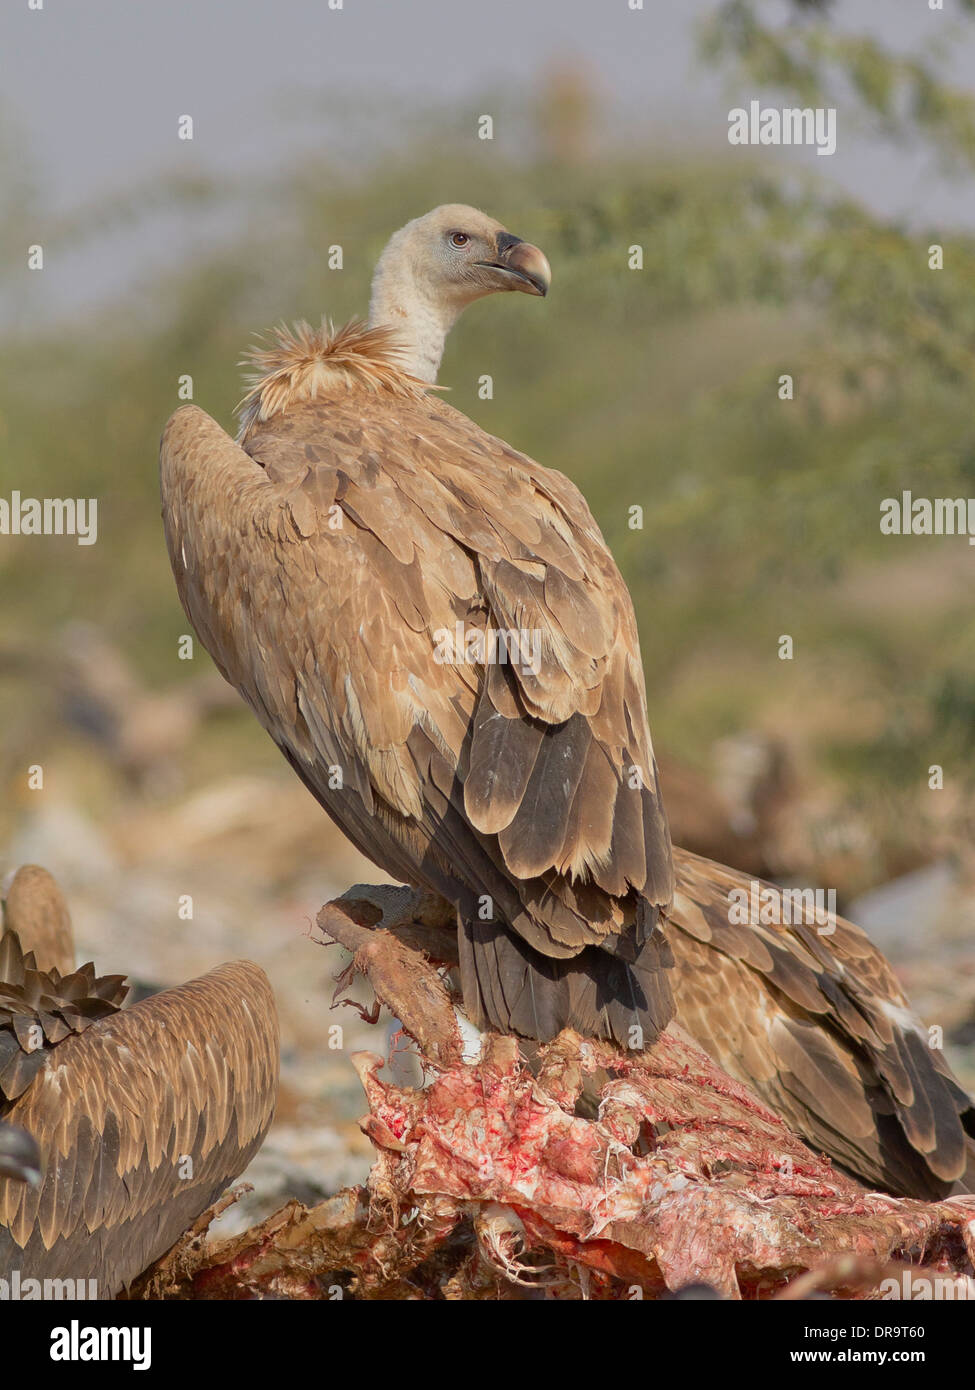 Griffon Vulture (Gyps fulvus) near Bikaner, Rajasthan, India. near Bikaner, Rajasthan, India. Stock Photo